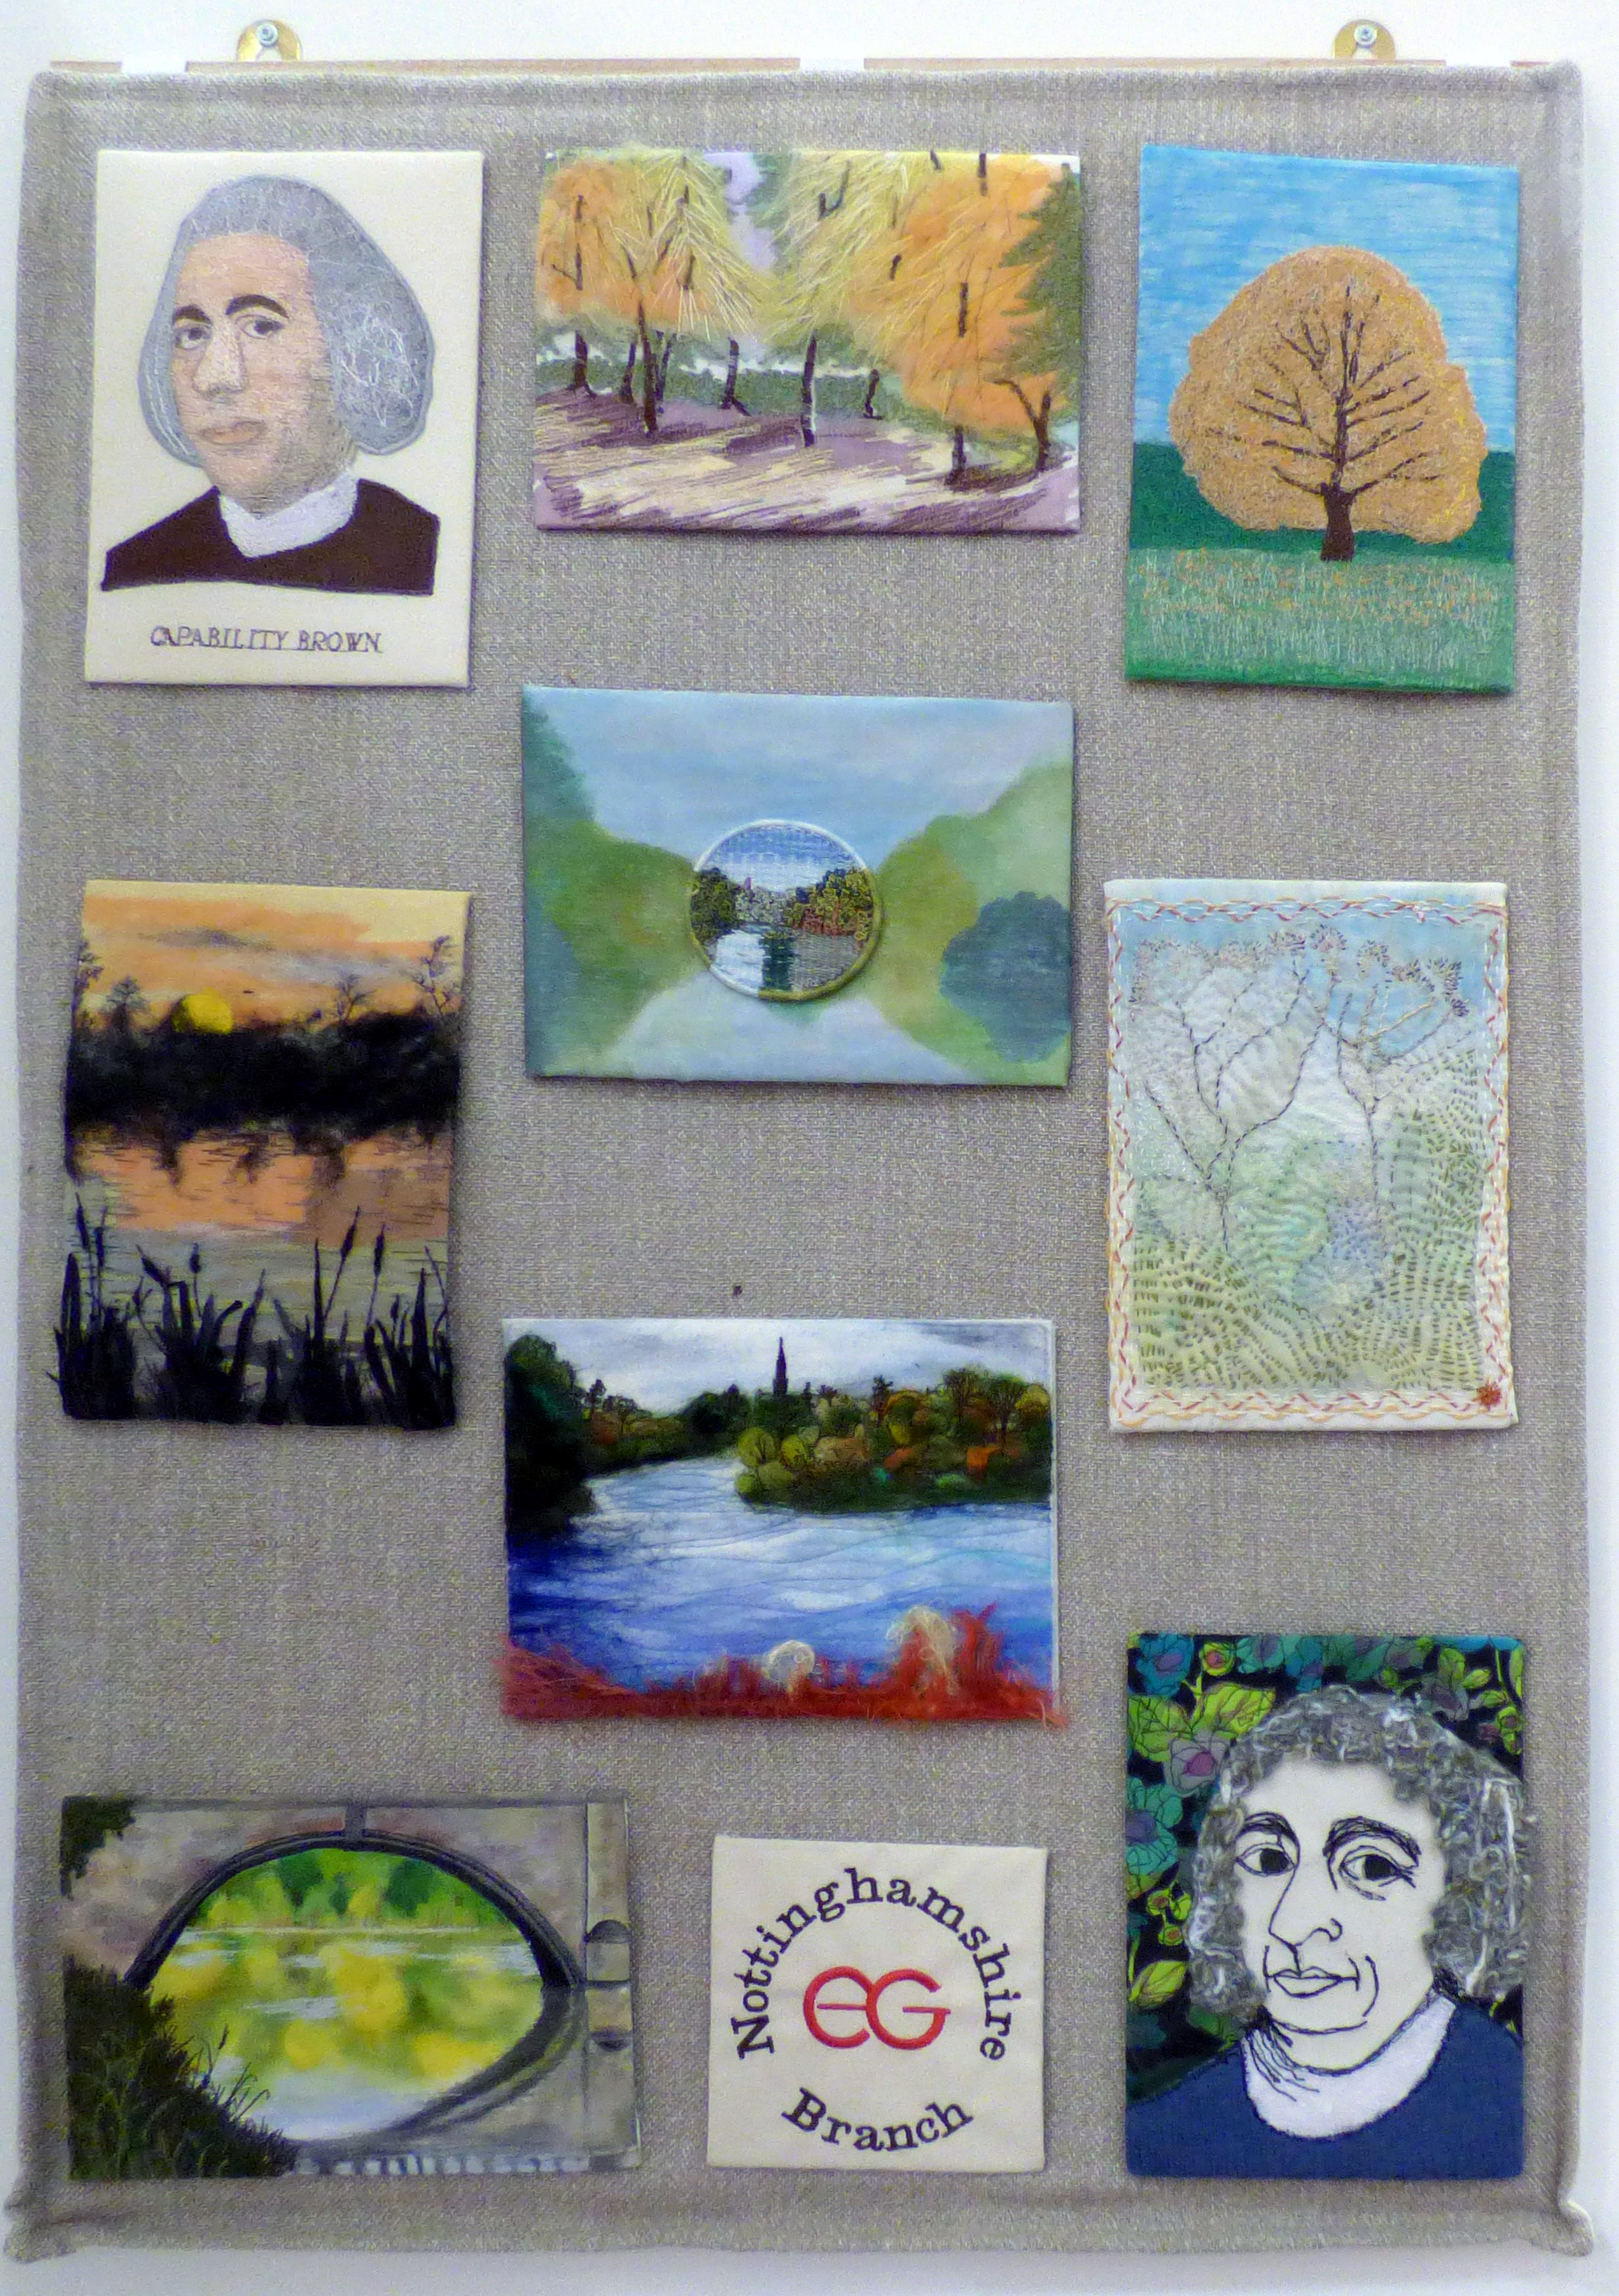 INSPIRED BY CAPABILITY BROWN AND CLUMBER PARK, a Group Project by Nottinghamshire EG, hand and machine embroidery, applique and fabric painting